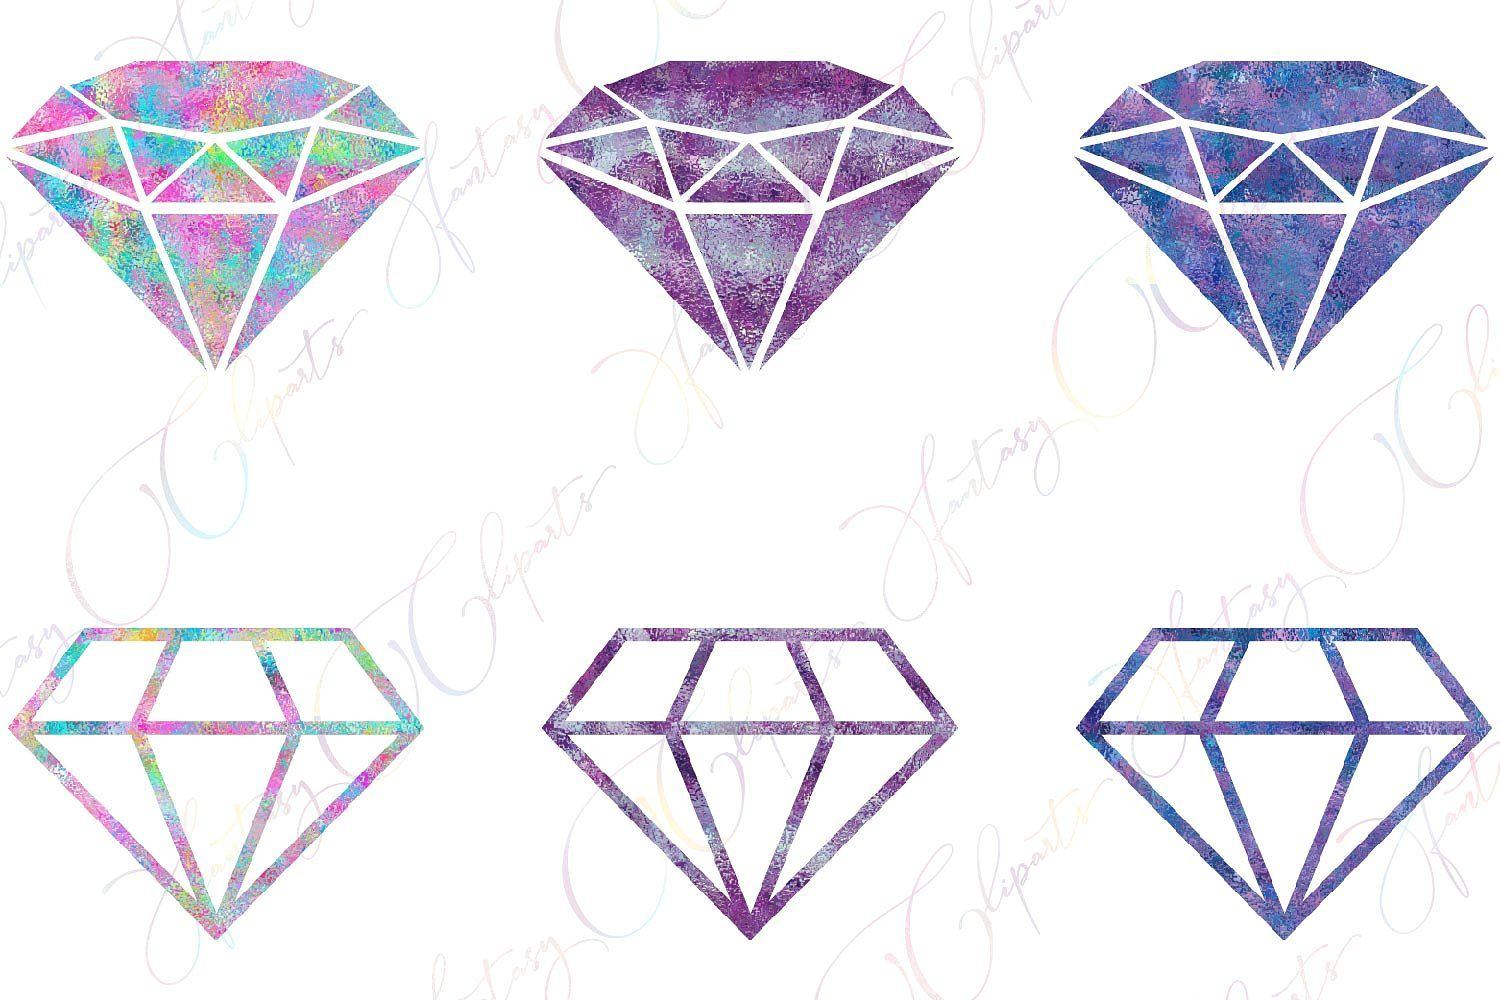 Glitter clipart diamond. Diamonds dpi inches receive